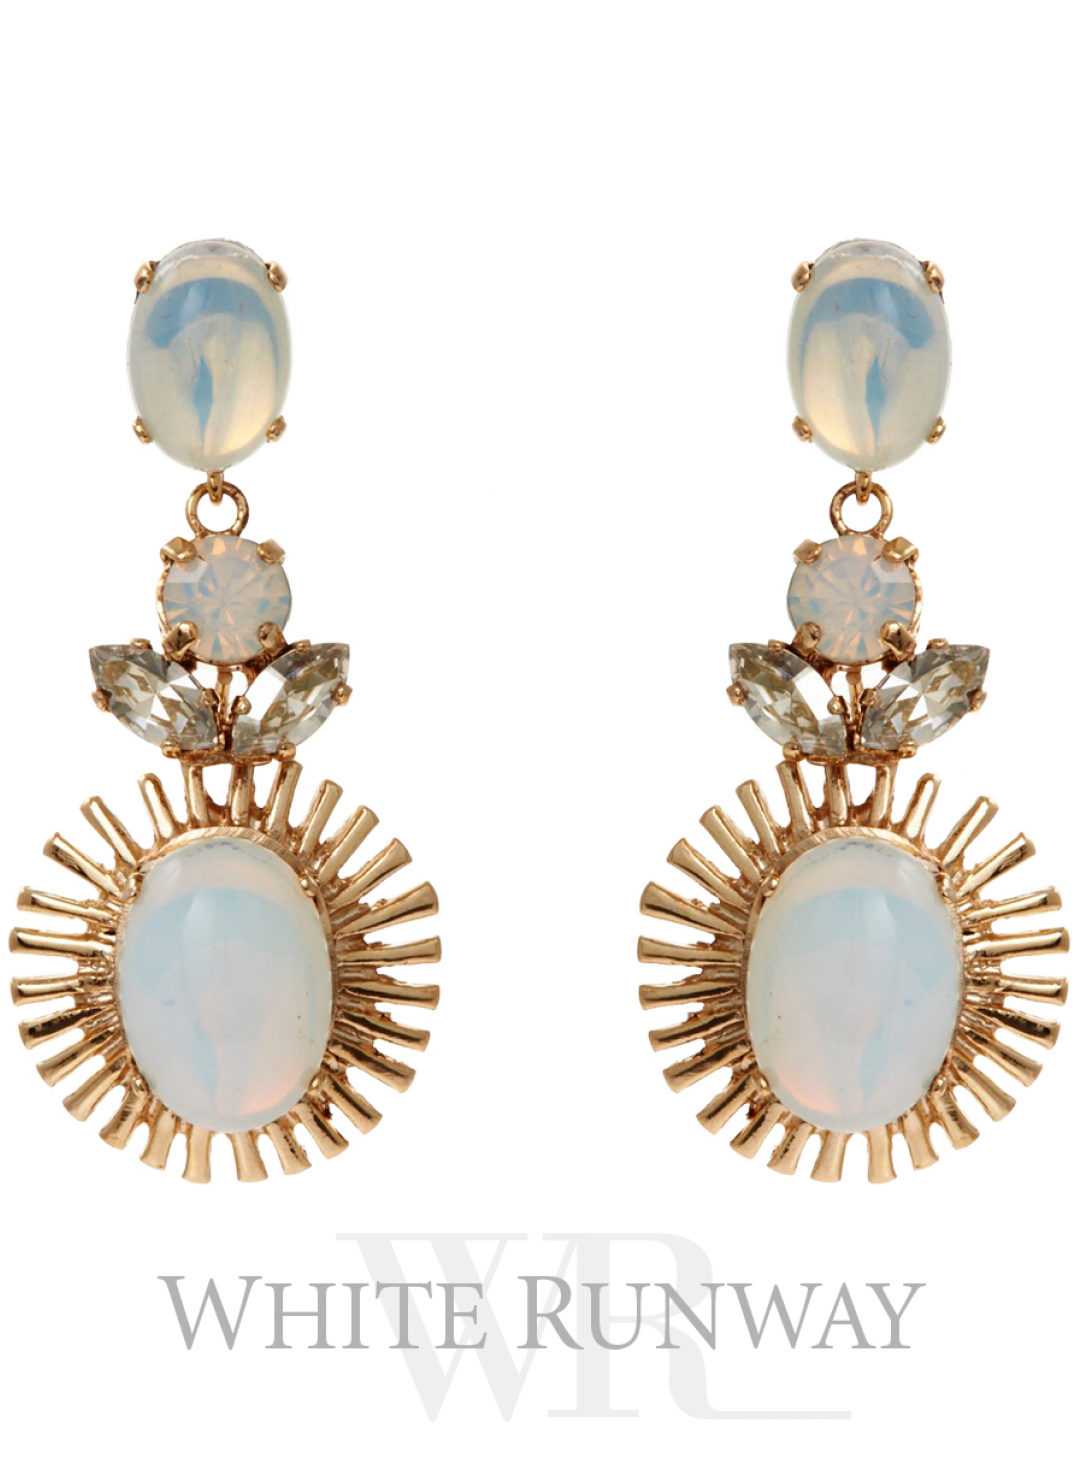 Cygnus Earring. Gorgeous earrings by Peter Lang. Made with White Opal and Clear Swarovski® Crystals.